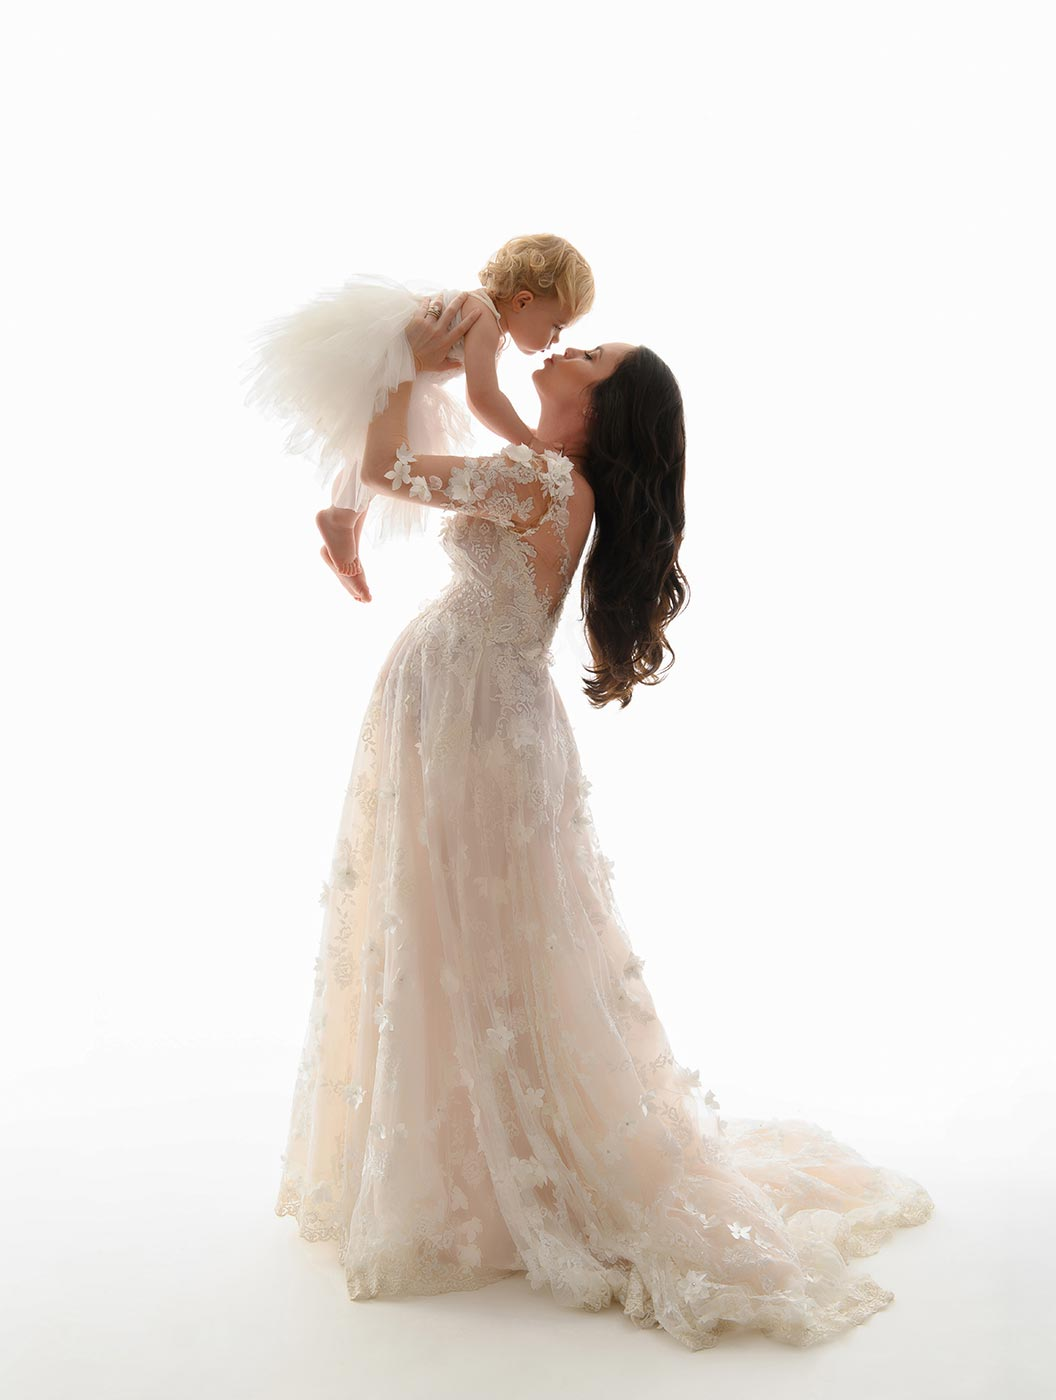 pregnant mother in white lace gown kissing baby with tutu dress nyc